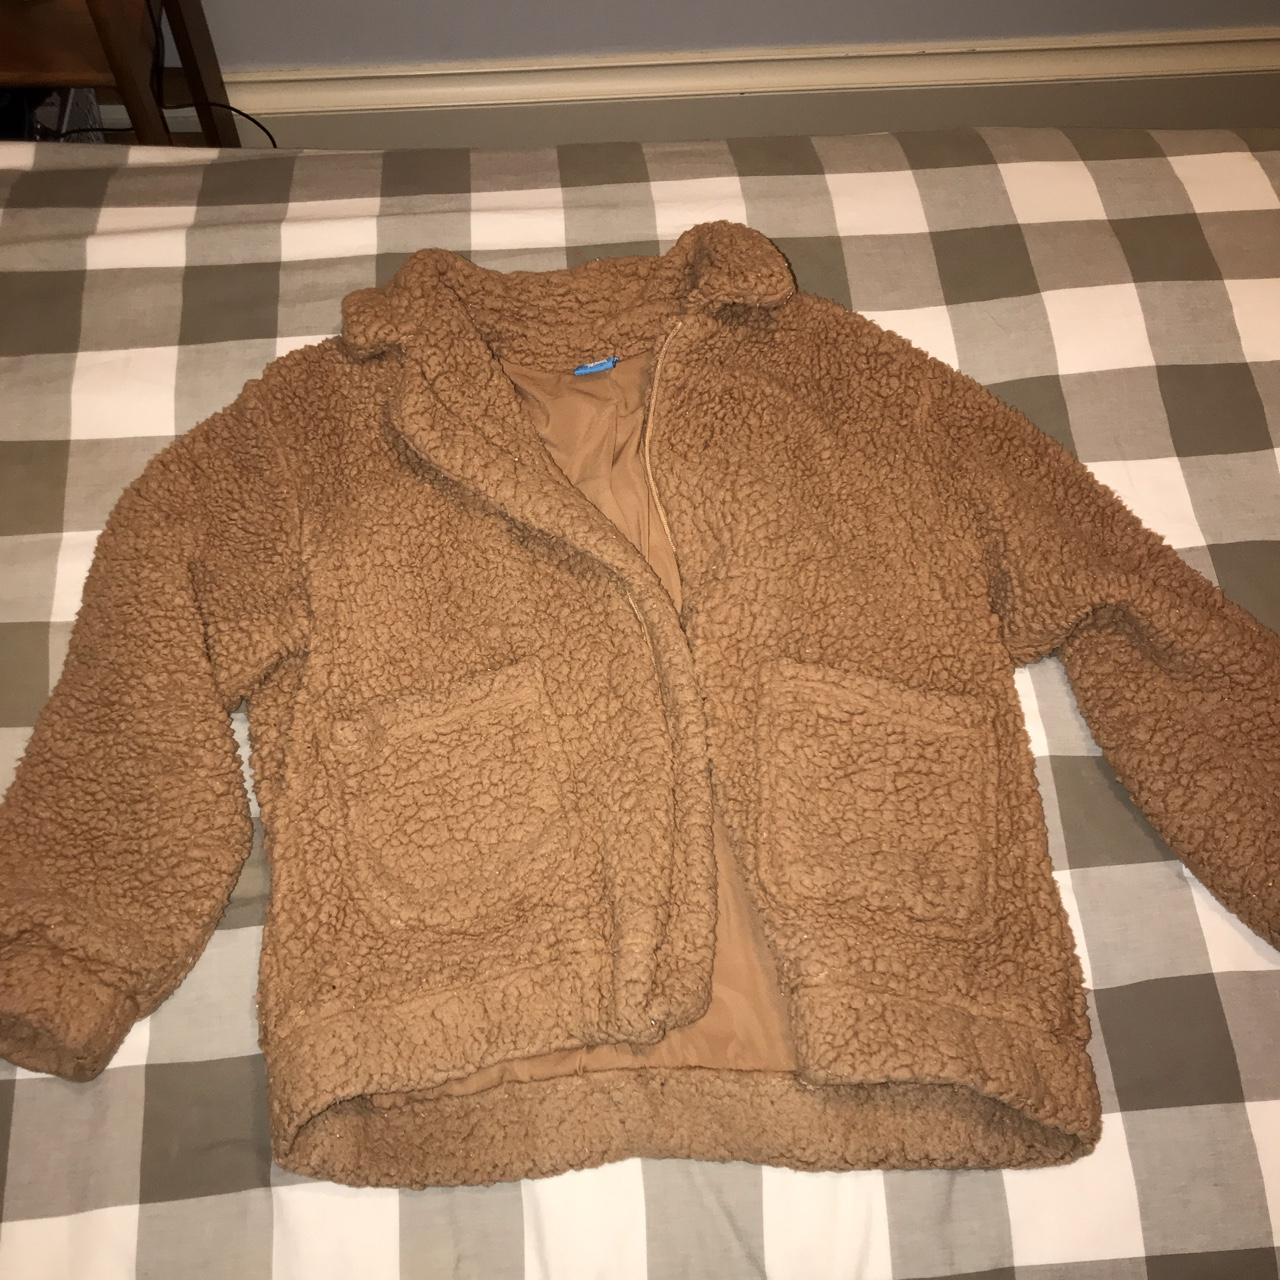 9817a1a2d ON HOLD*** emma chamberlain poopy jacket 2.0